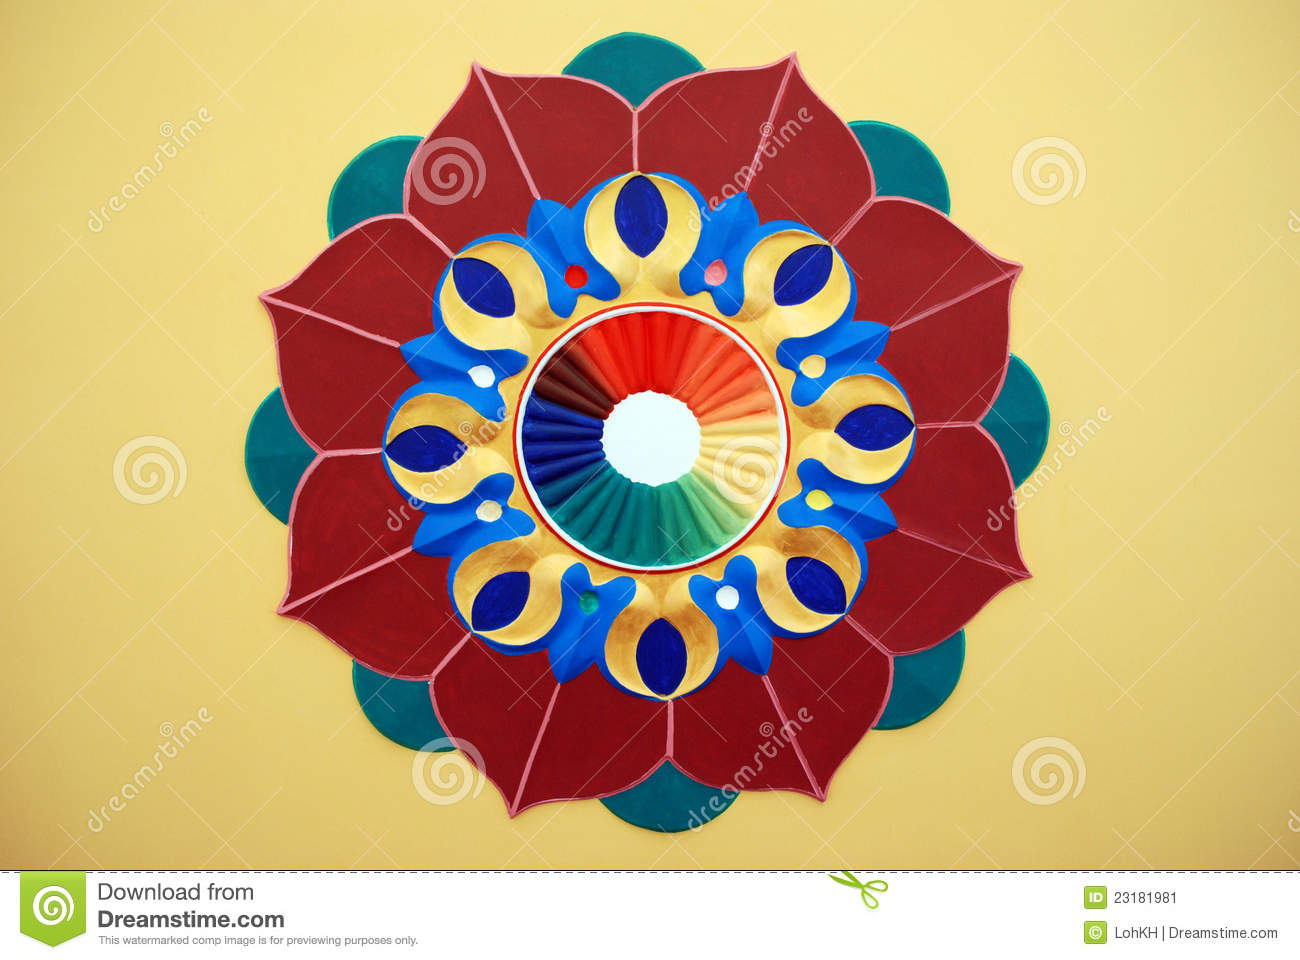 Graphic design of lotus flower Lotus Flower Graphic Design